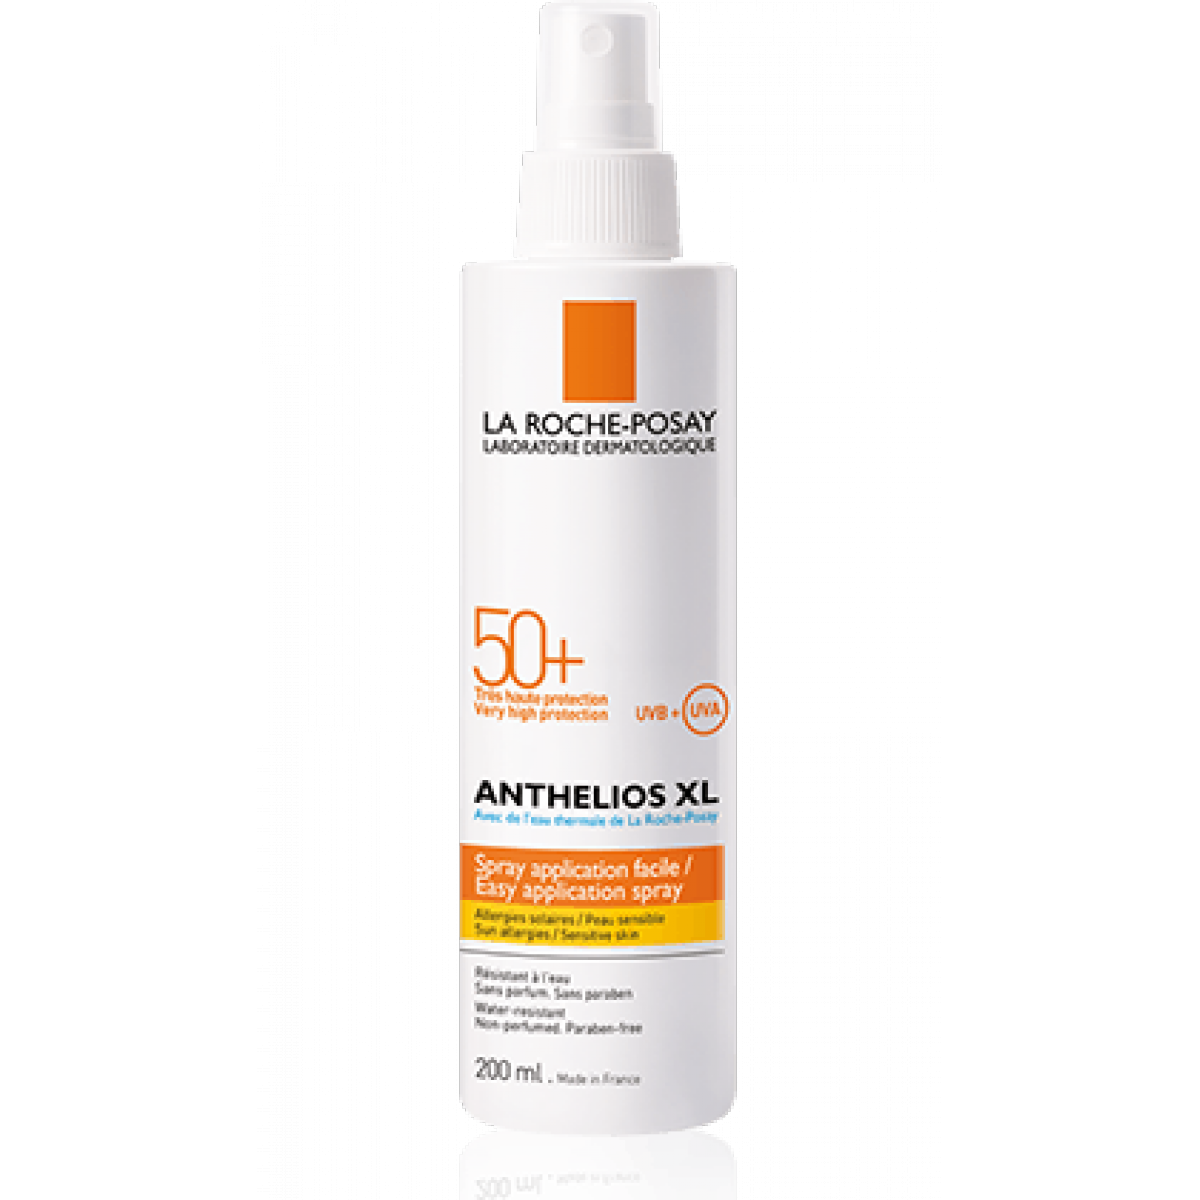 La roche posay Anthelios XL Spray